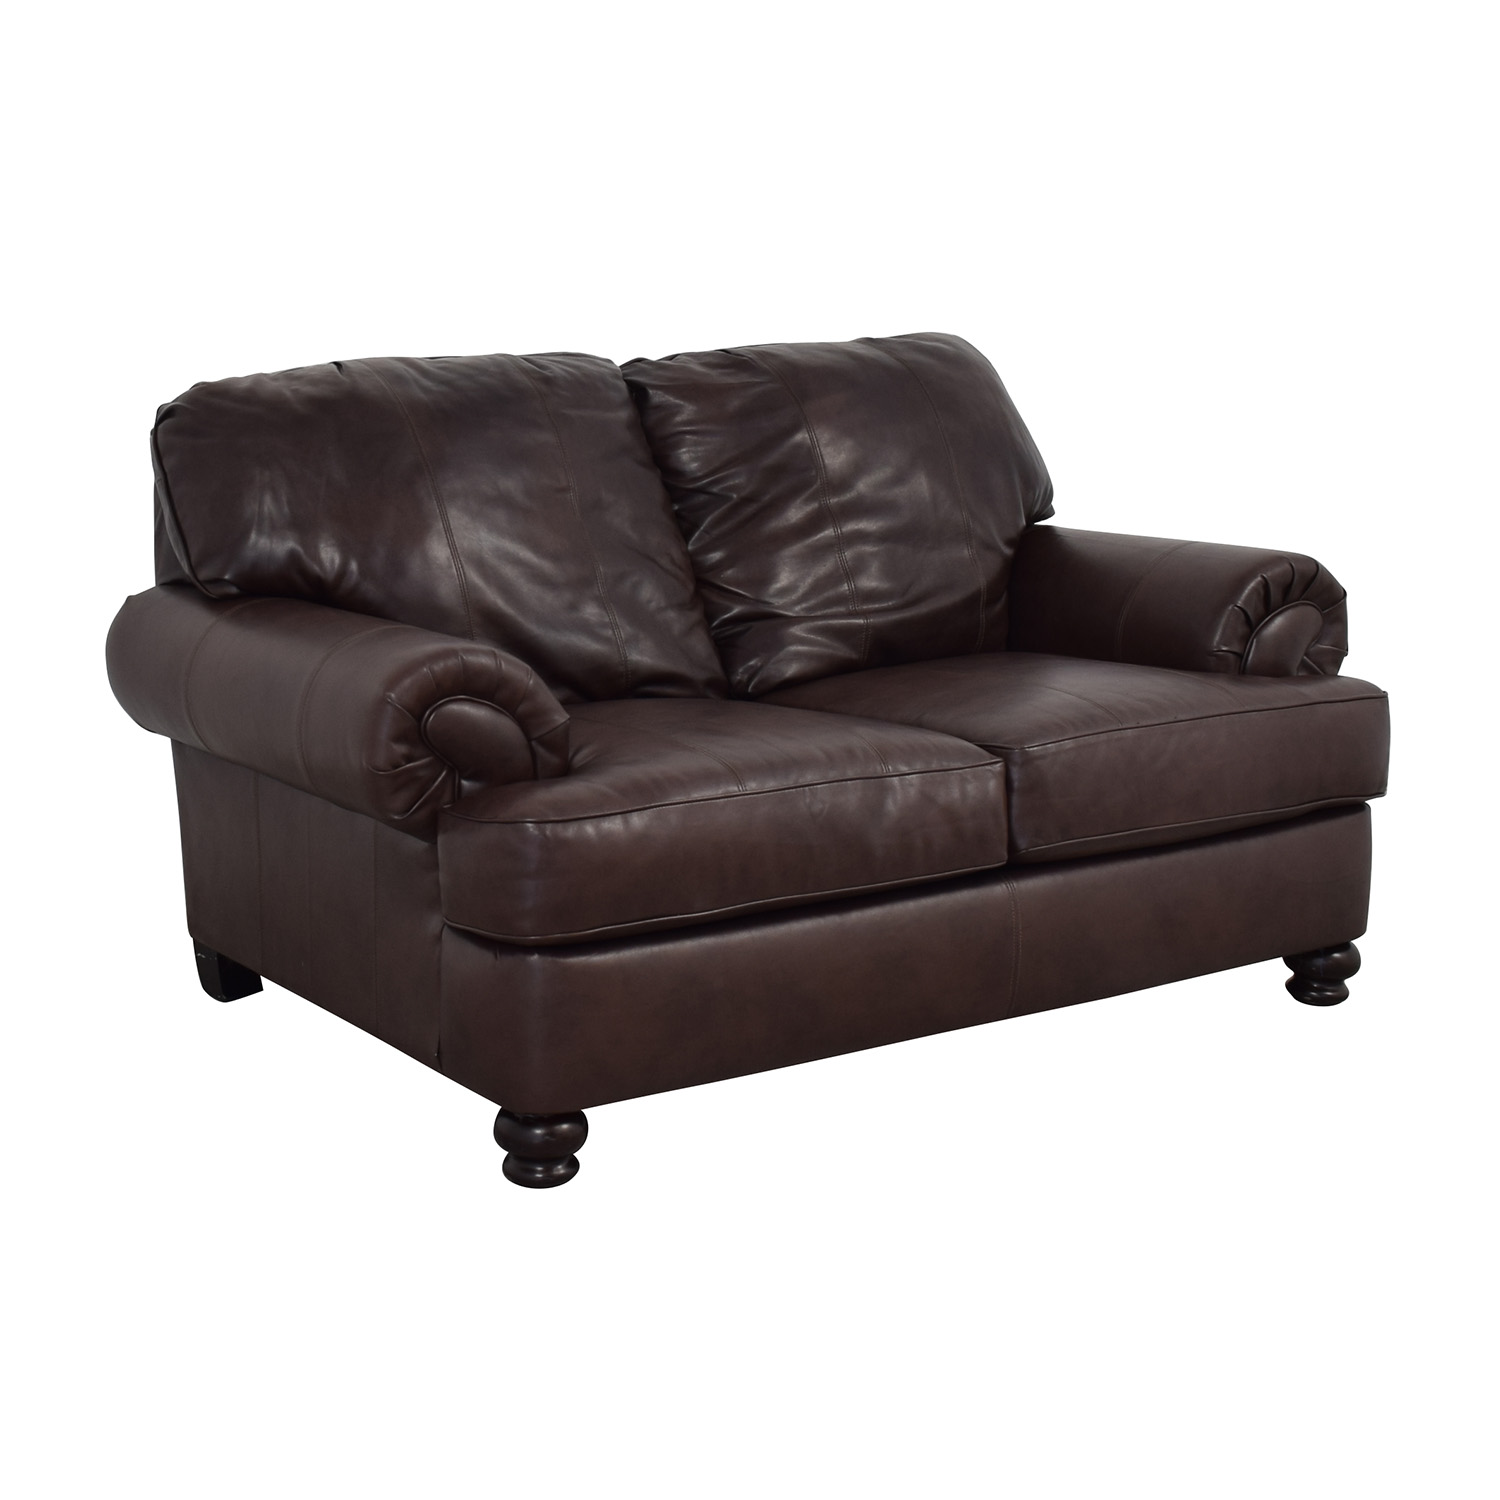 Jackson Furniture Charlotte Brown Loveseat / Sofas